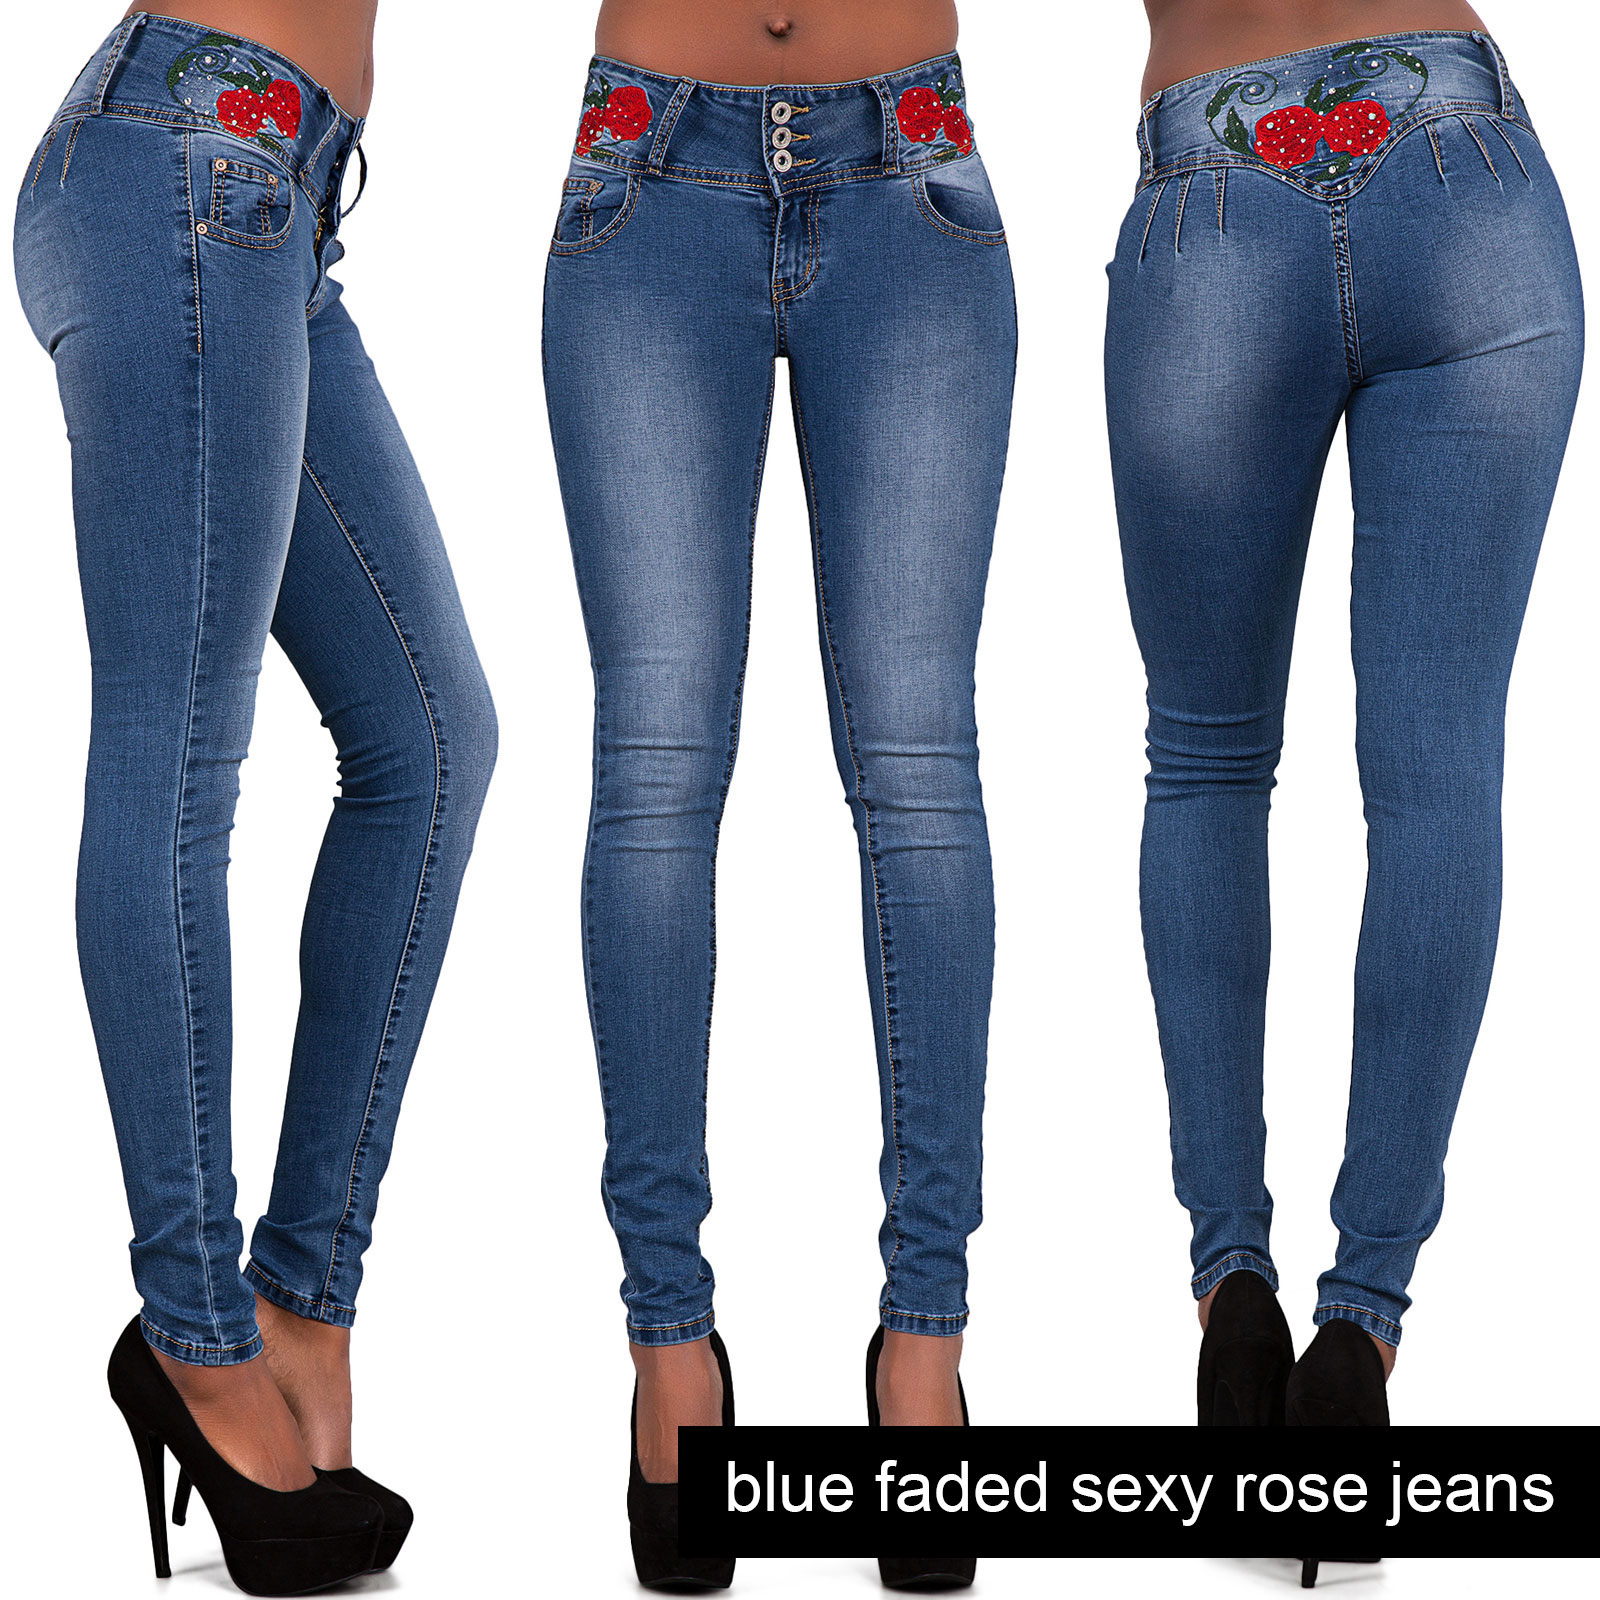 NEW-WOMENS-LADIES-RIPPED-JEANS-SEXY-SKINNY-FIT-BLUE-EMBROIDERED-DENIM-SIZE-6-14